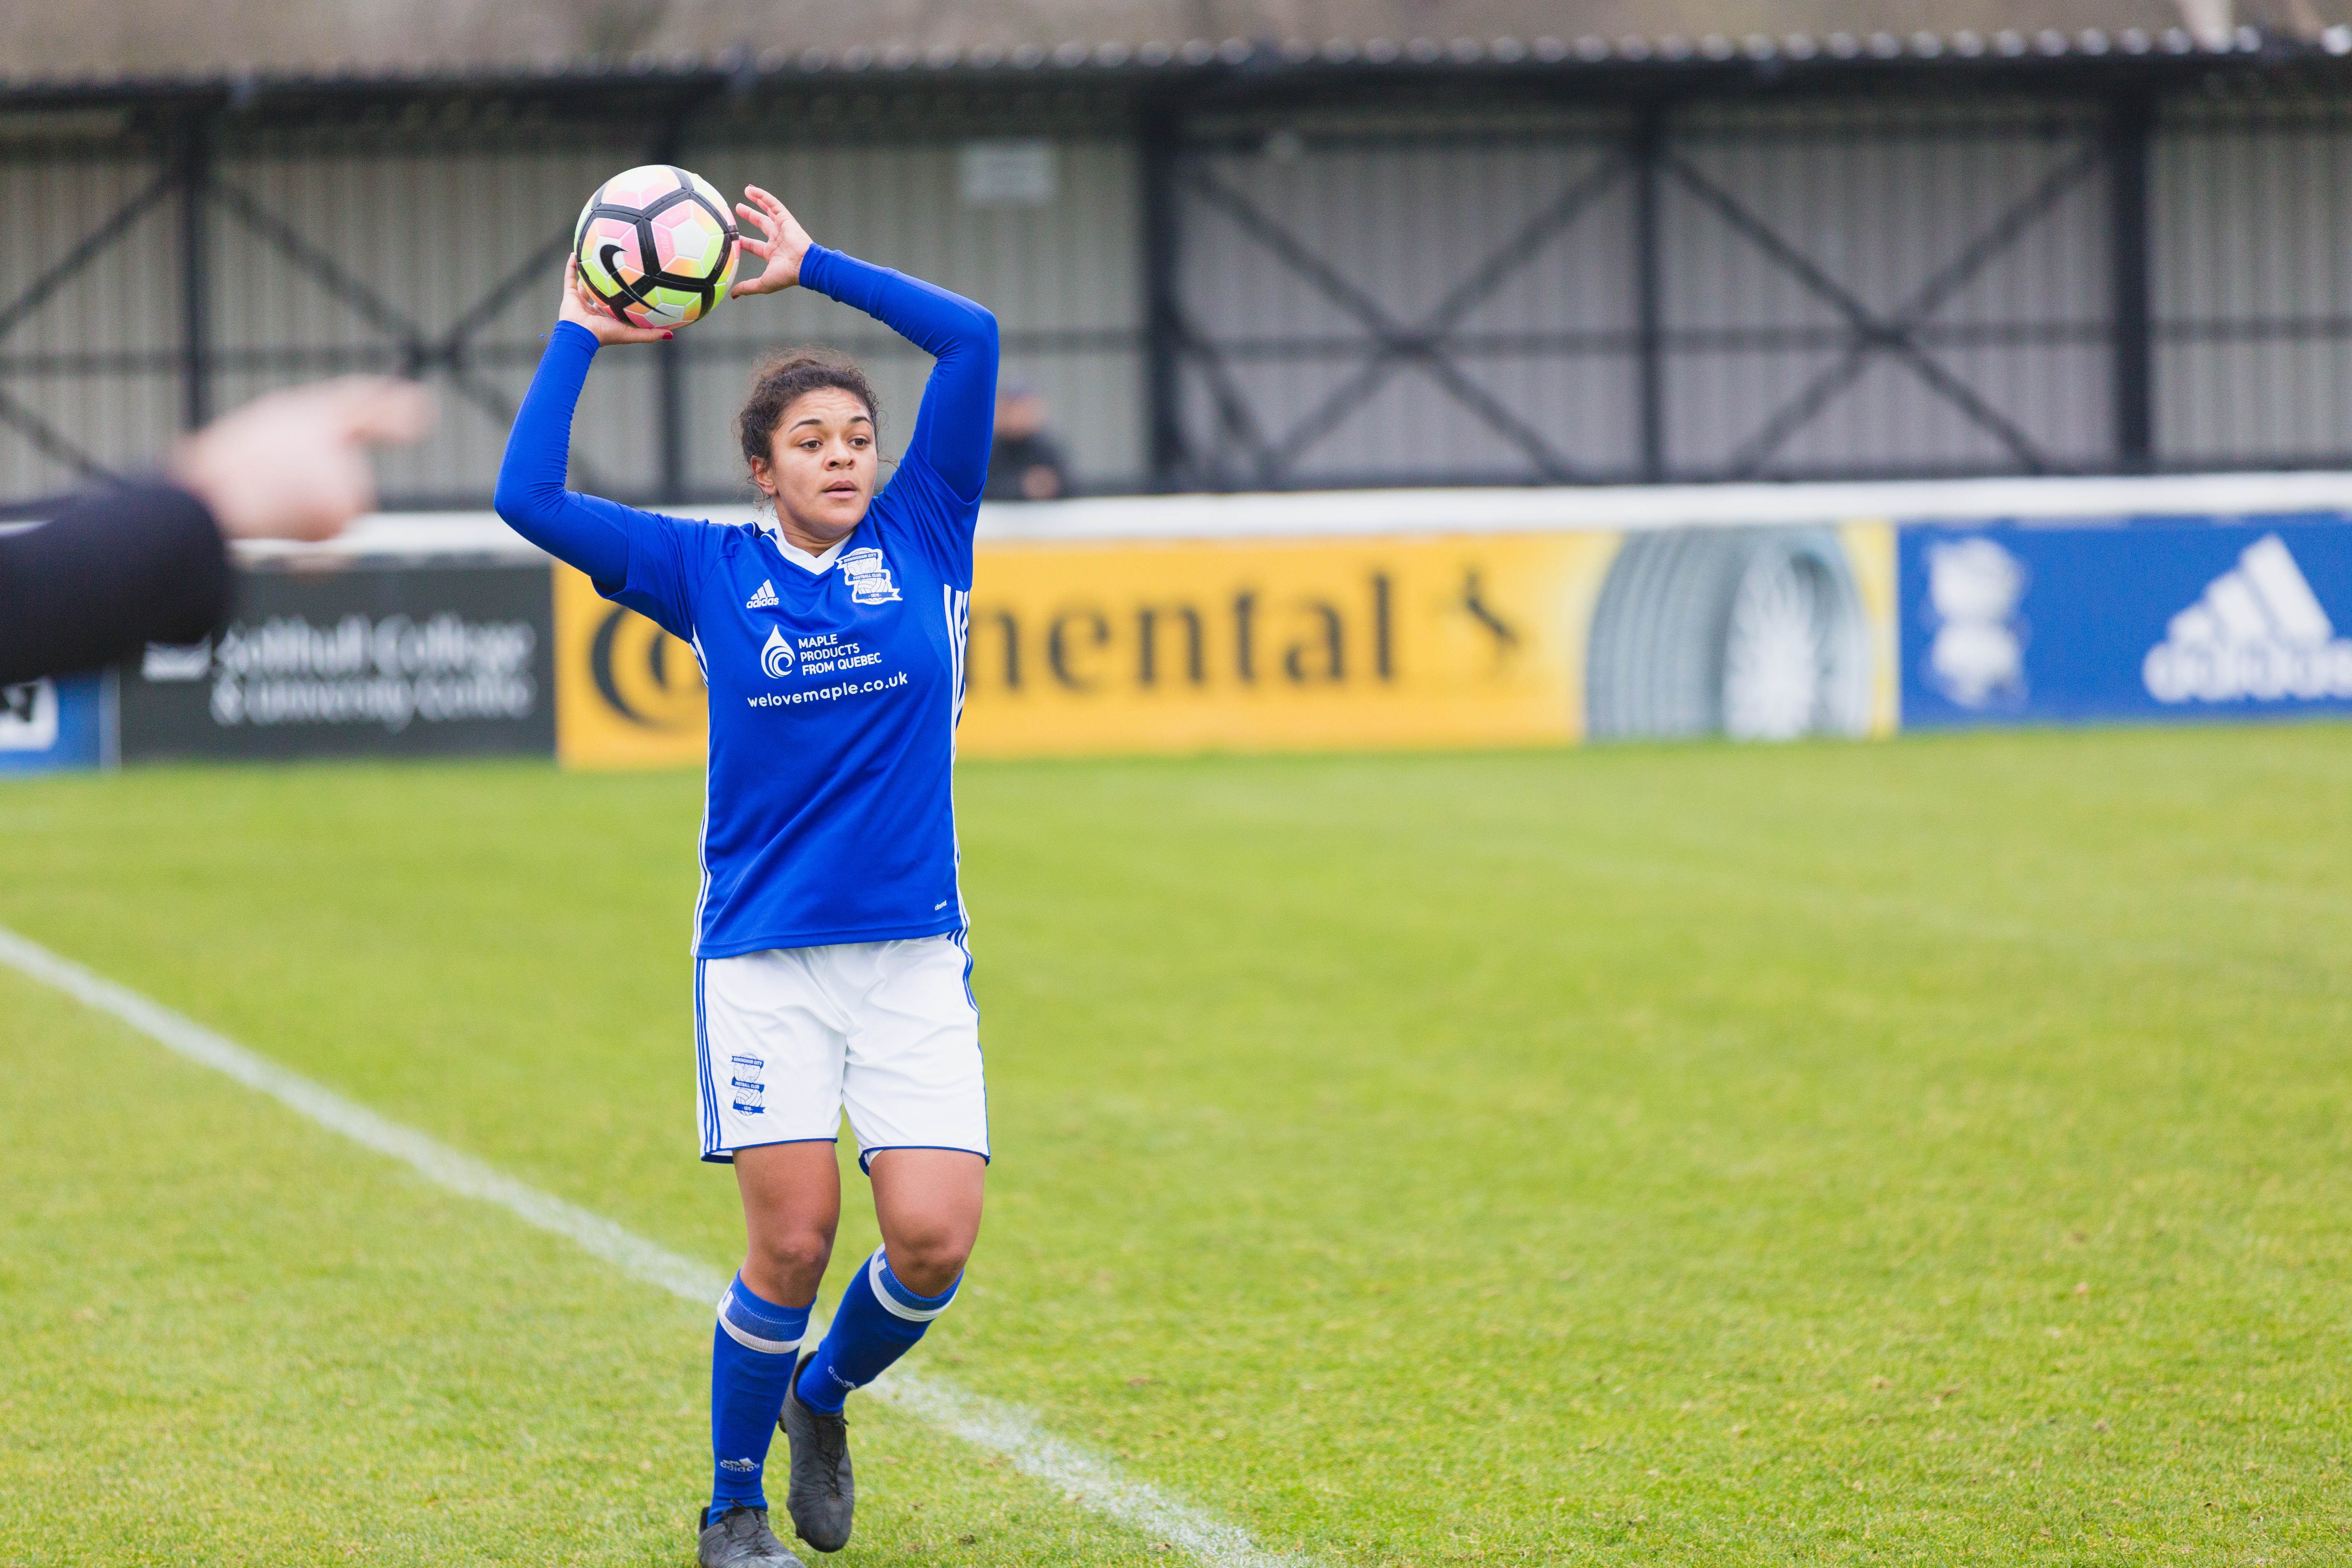 Birmingham City Ladies FC player throwing in the ball